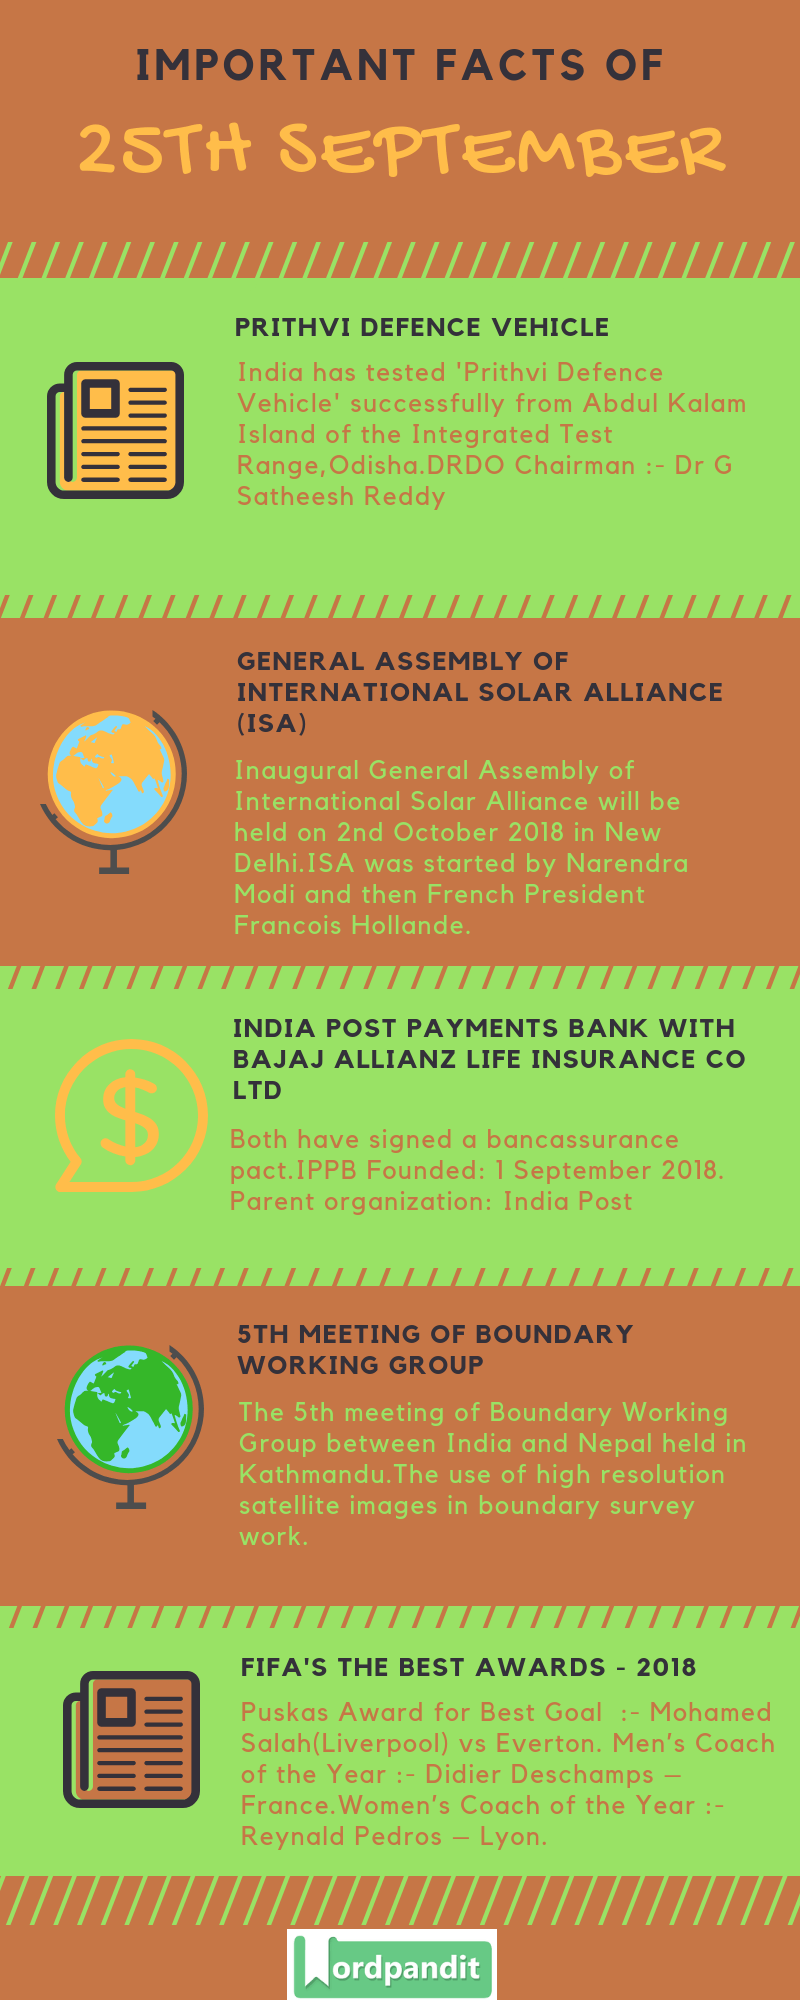 Daily Current Affairs 25 September 2018 Current Affairs Quiz 25 September 2018 Current Affairs Infographic